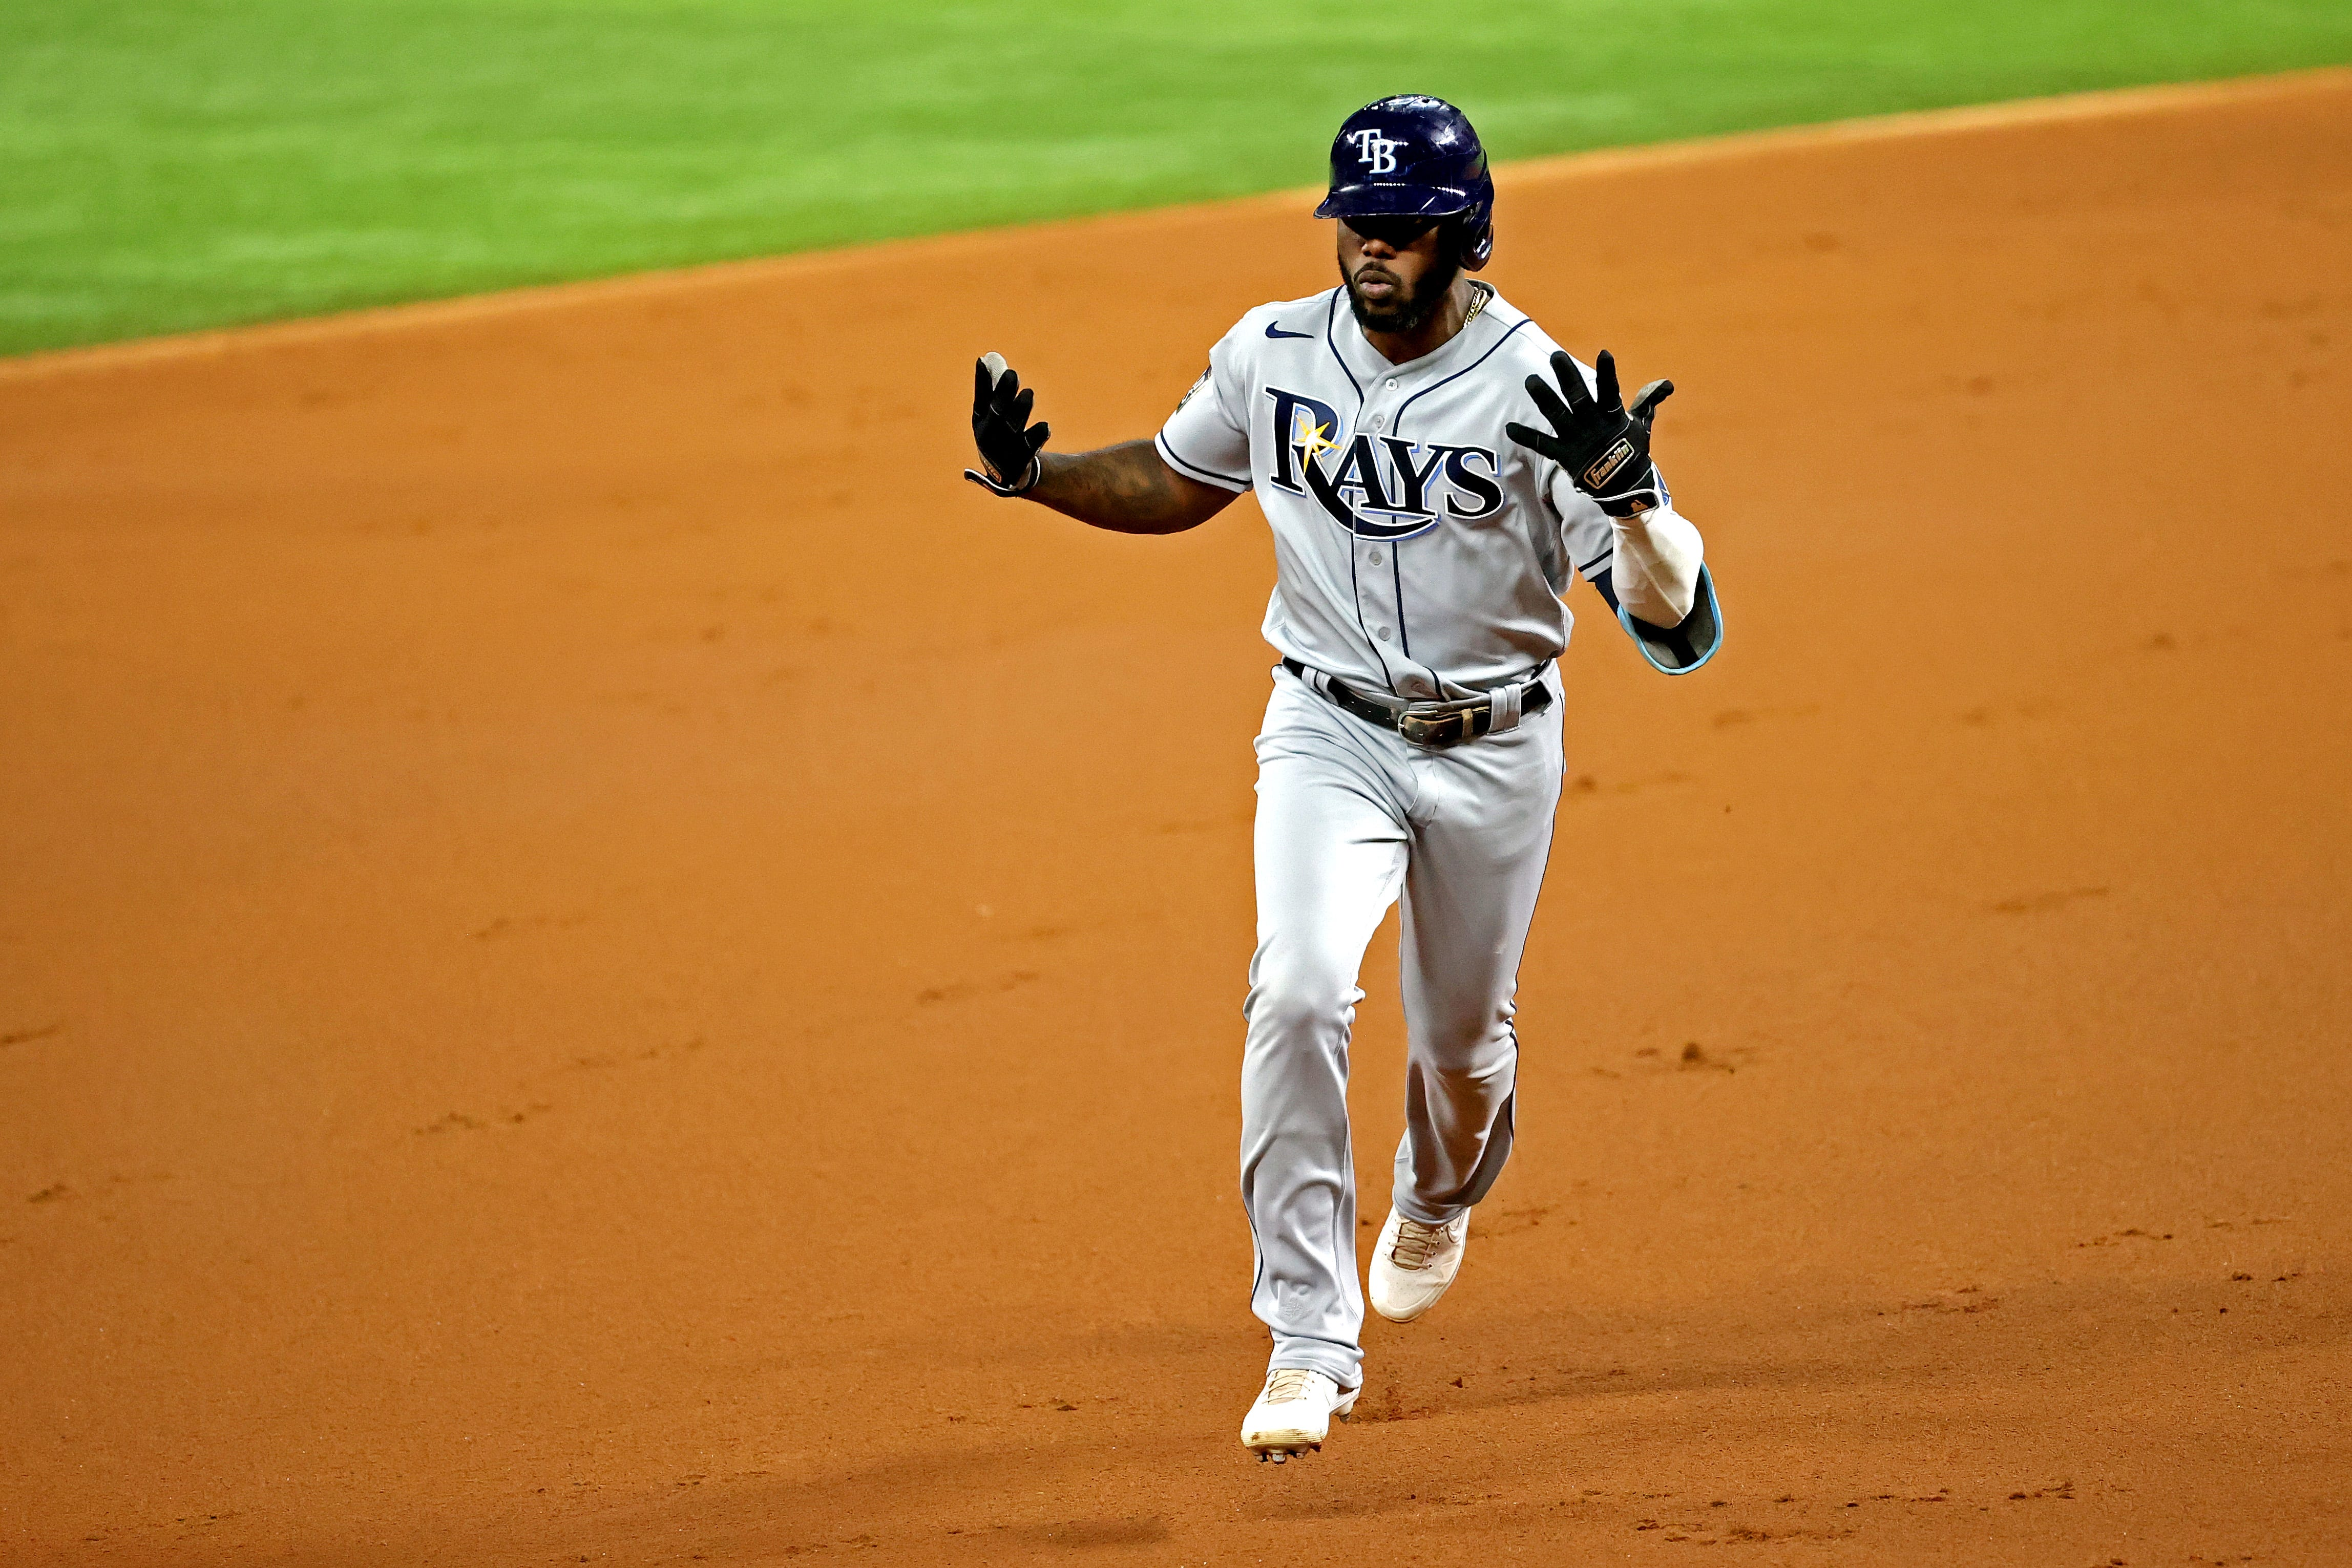 Rays rookie Randy Arozarena continues postseason onslaught with Game 6 home run